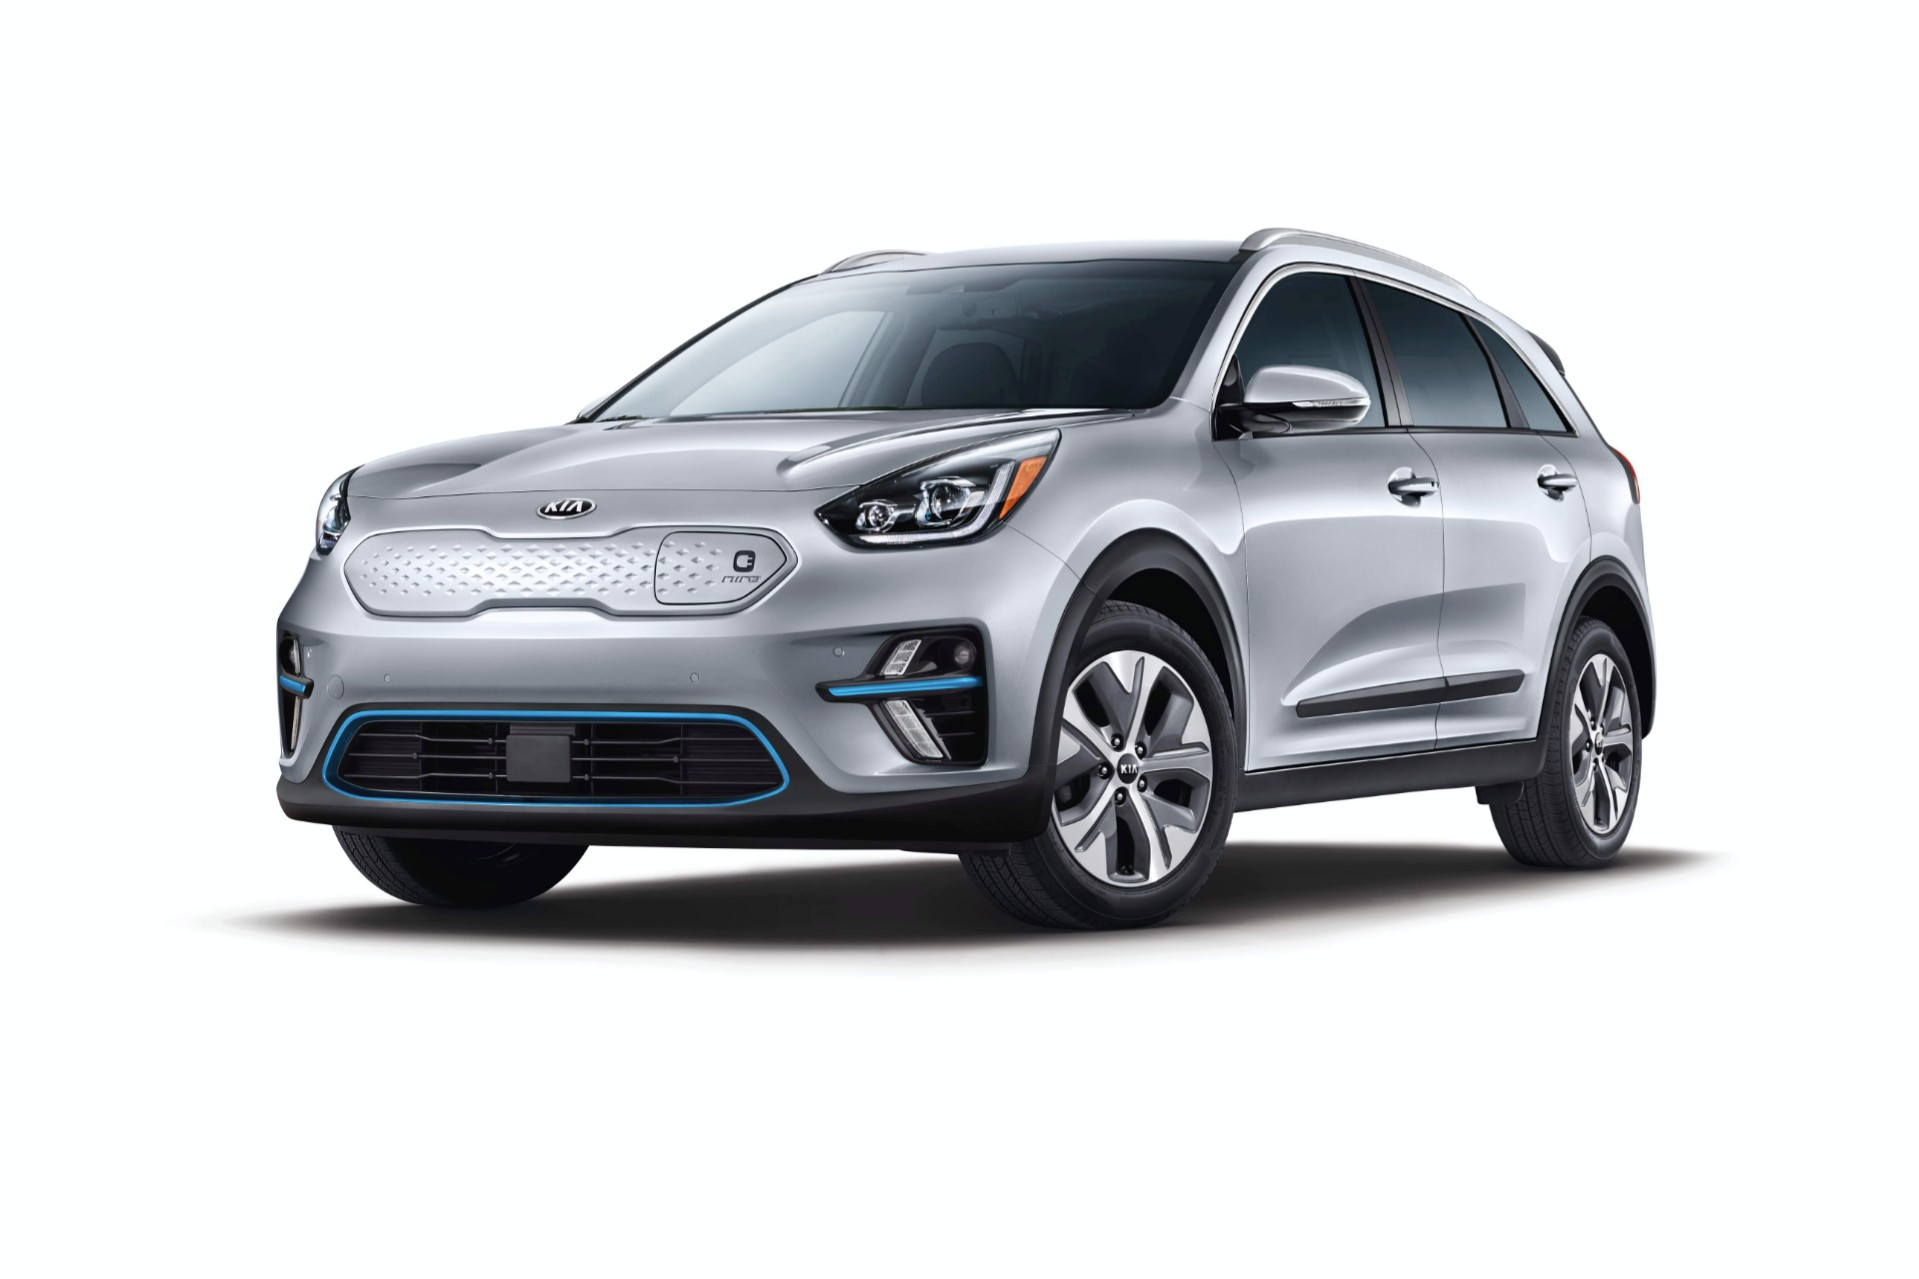 2019 kia niro ev rated at 239 miles on sale soon. Black Bedroom Furniture Sets. Home Design Ideas